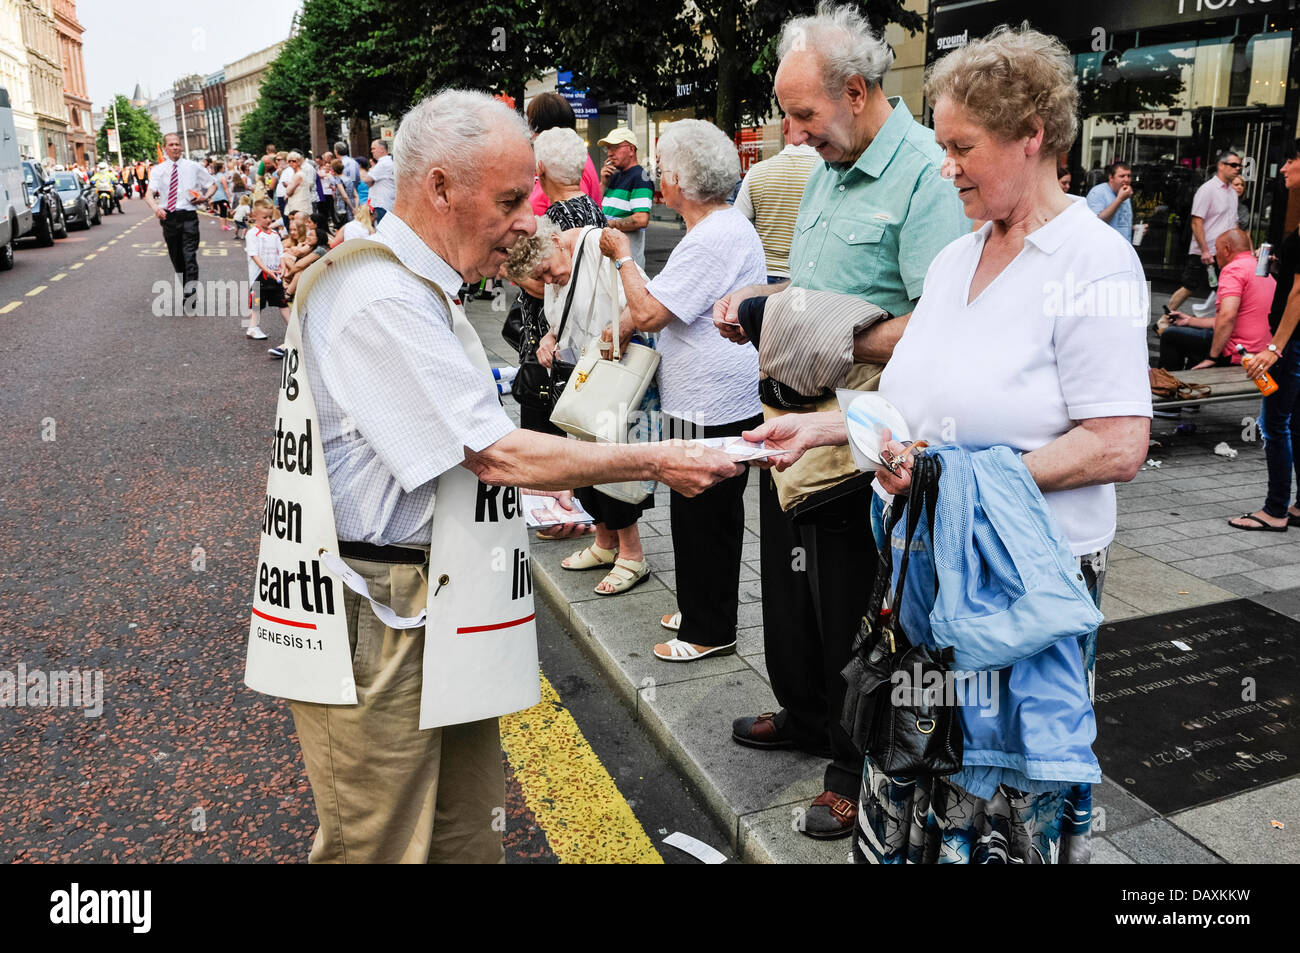 A man wearing a vest with bible verses hands out religious tracts to people in a crowd Stock Photo